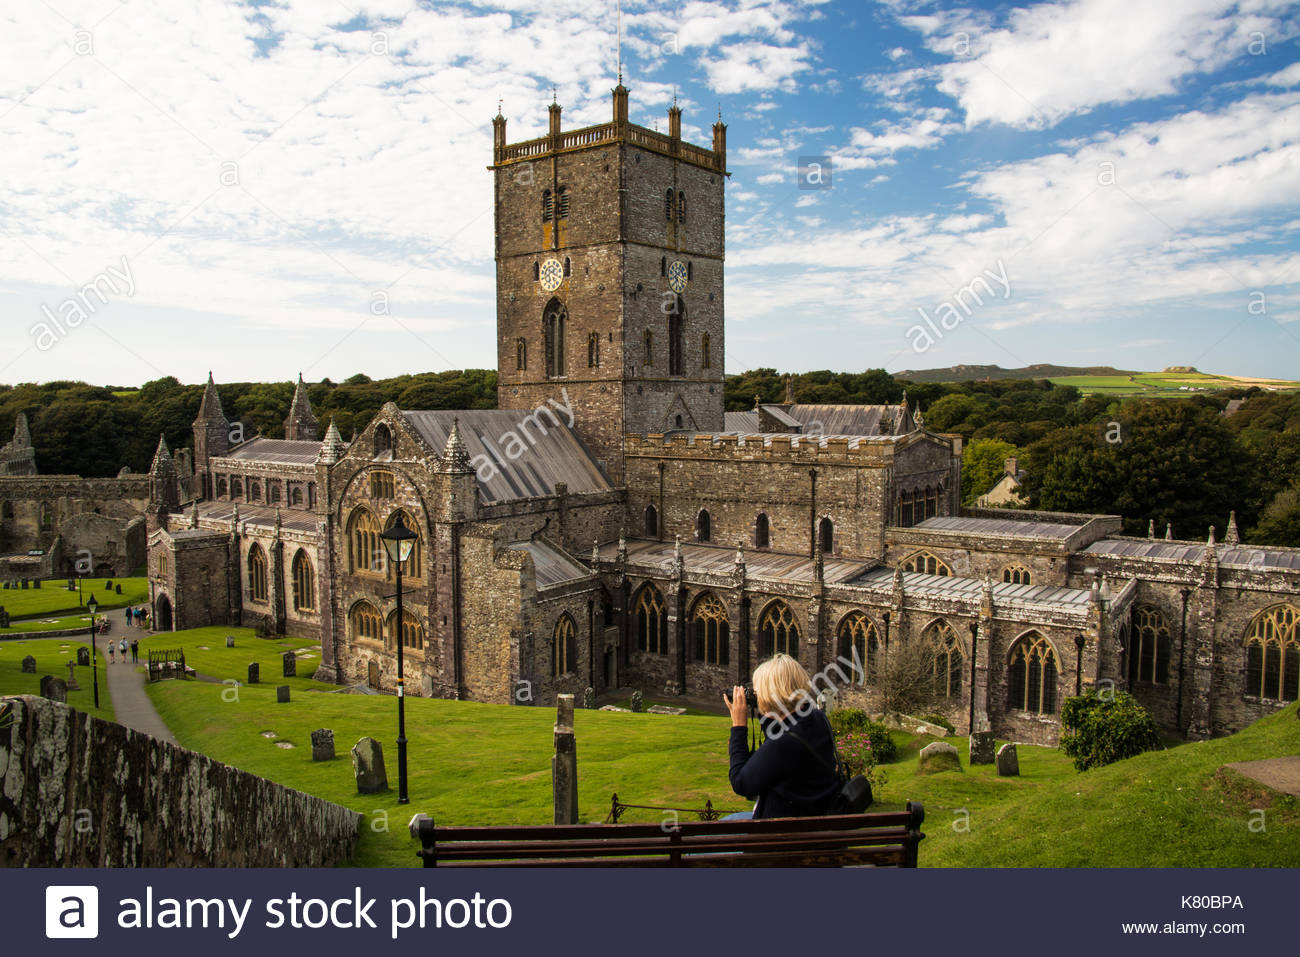 Oriel y Parc St Davids (Tyddewi), Saint Davids Stock Photos & Saint Davids Stock Images - Alamy